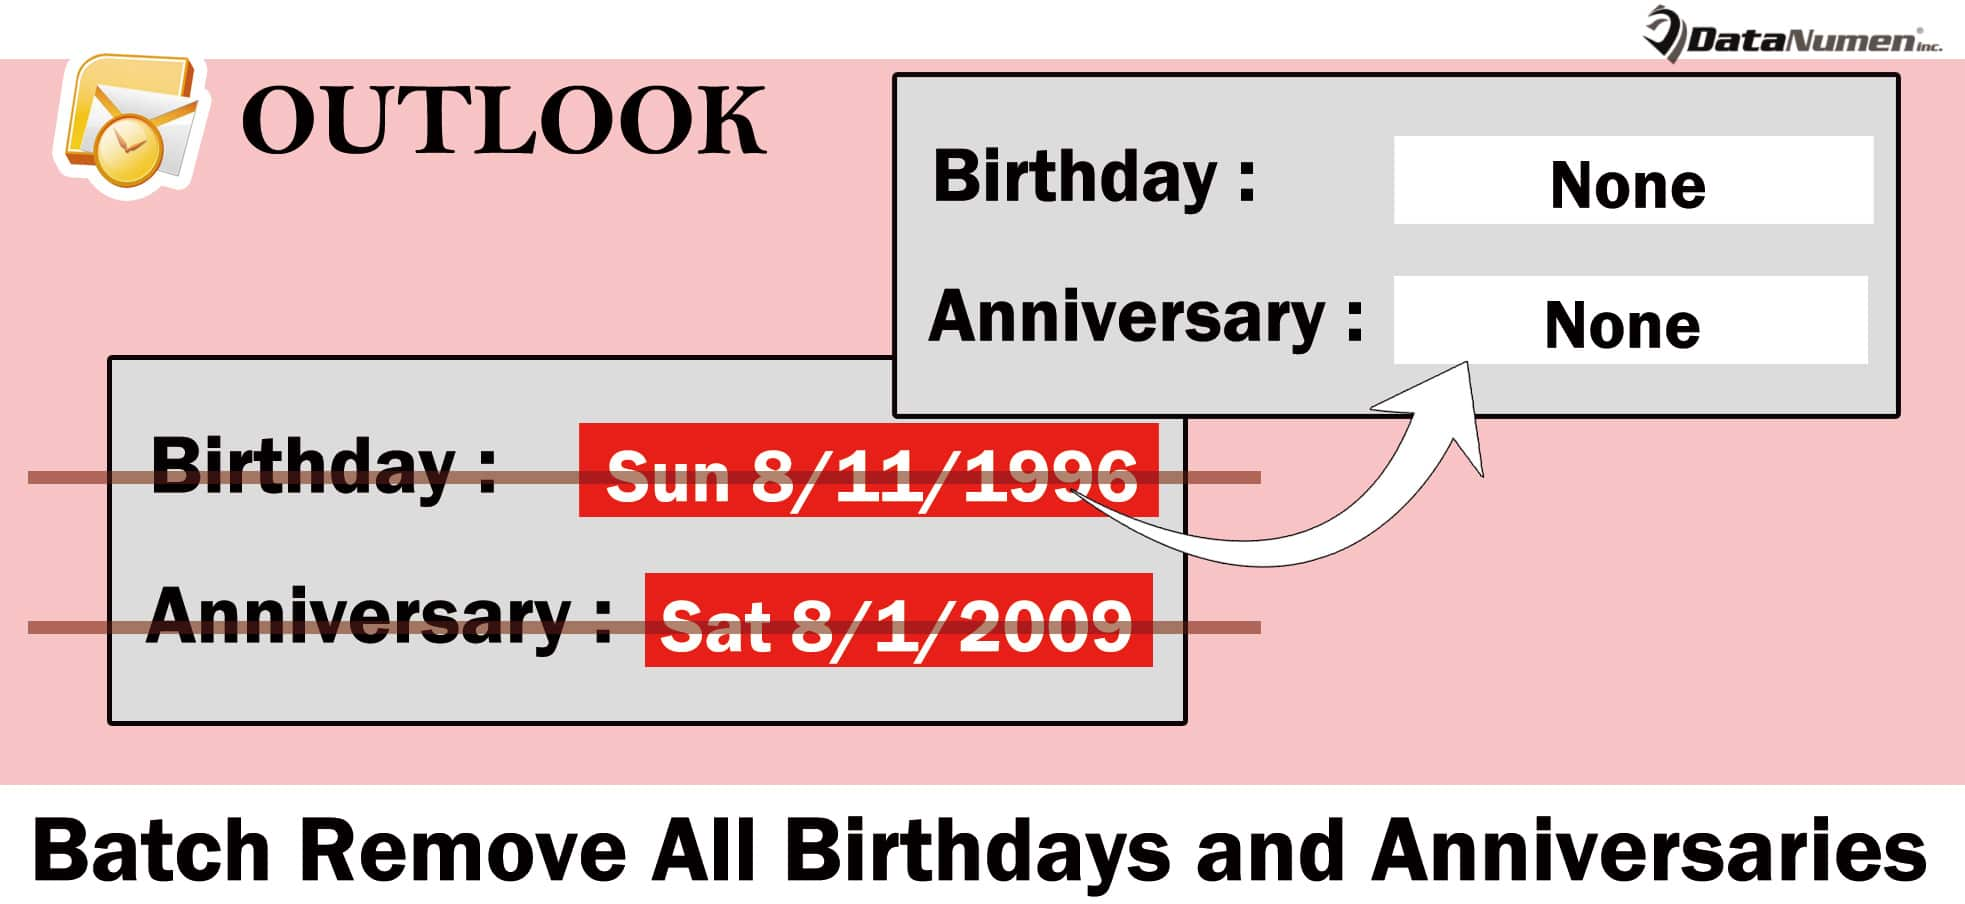 Batch Remove Birthdays and Anniversaries from All Contacts